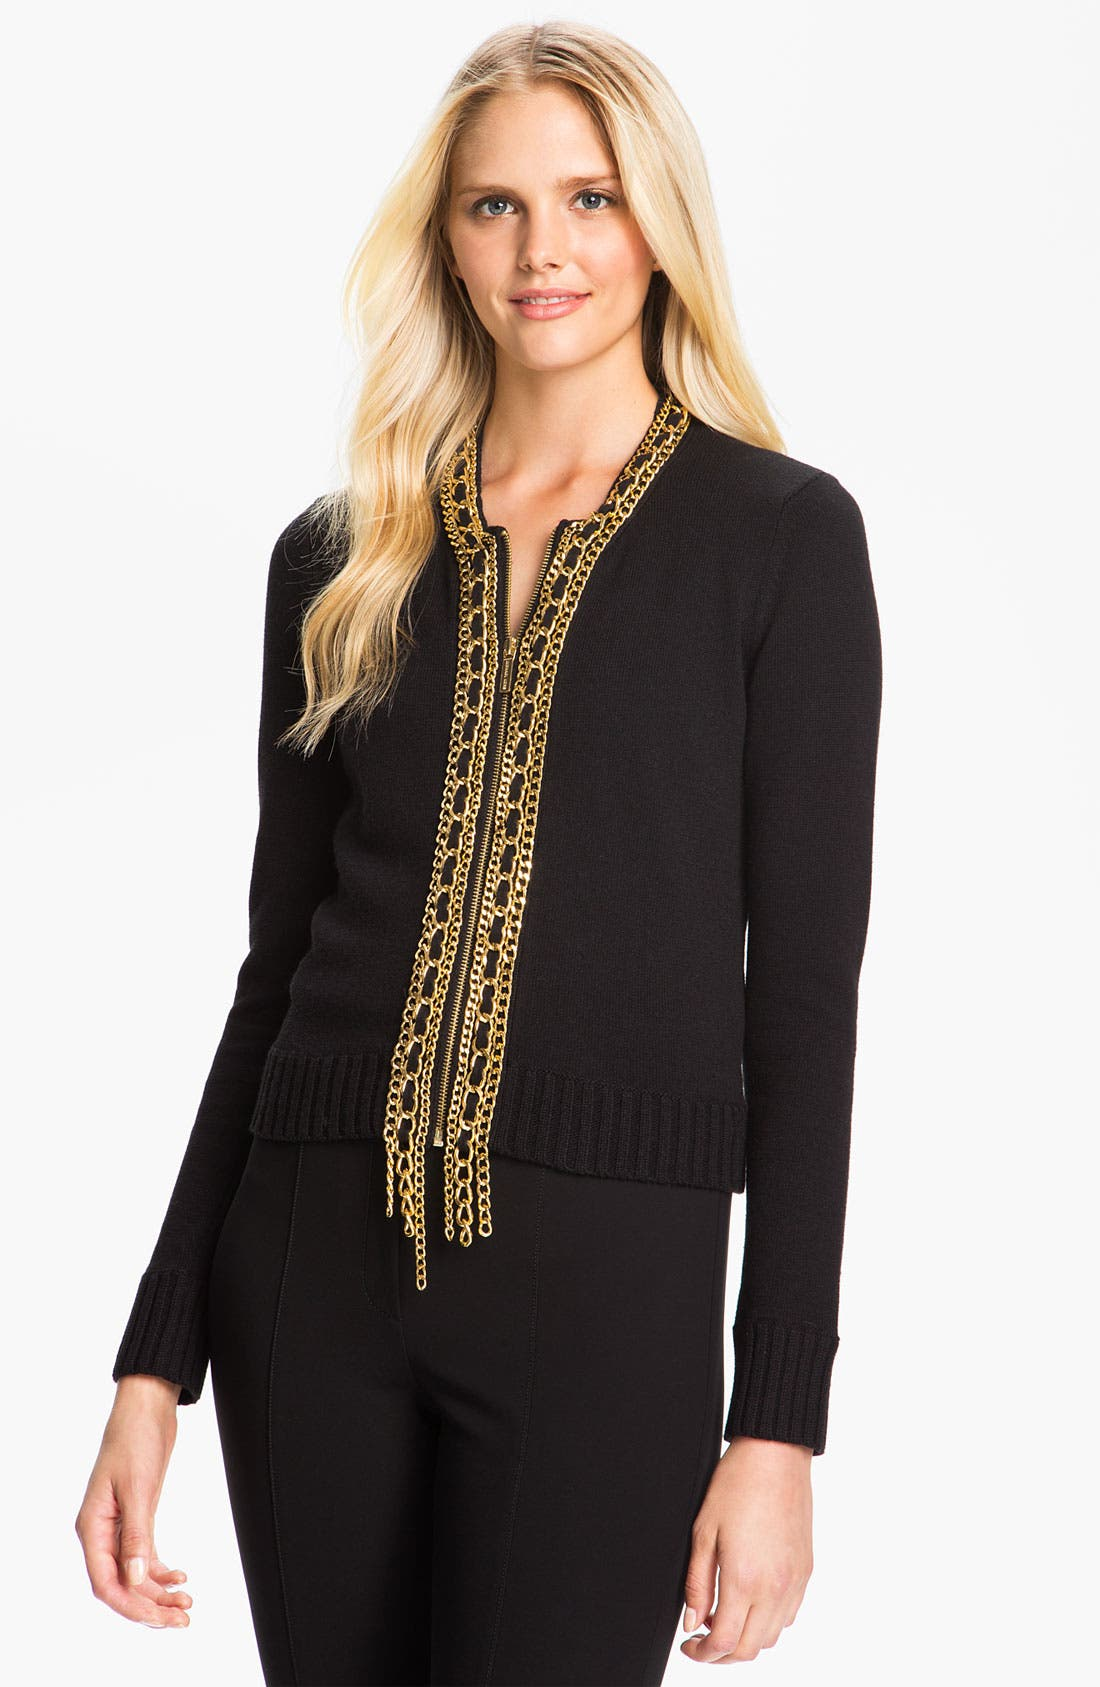 Alternate Image 1 Selected - MICHAEL Michael Kors Chain Placket Cardigan (Petite)